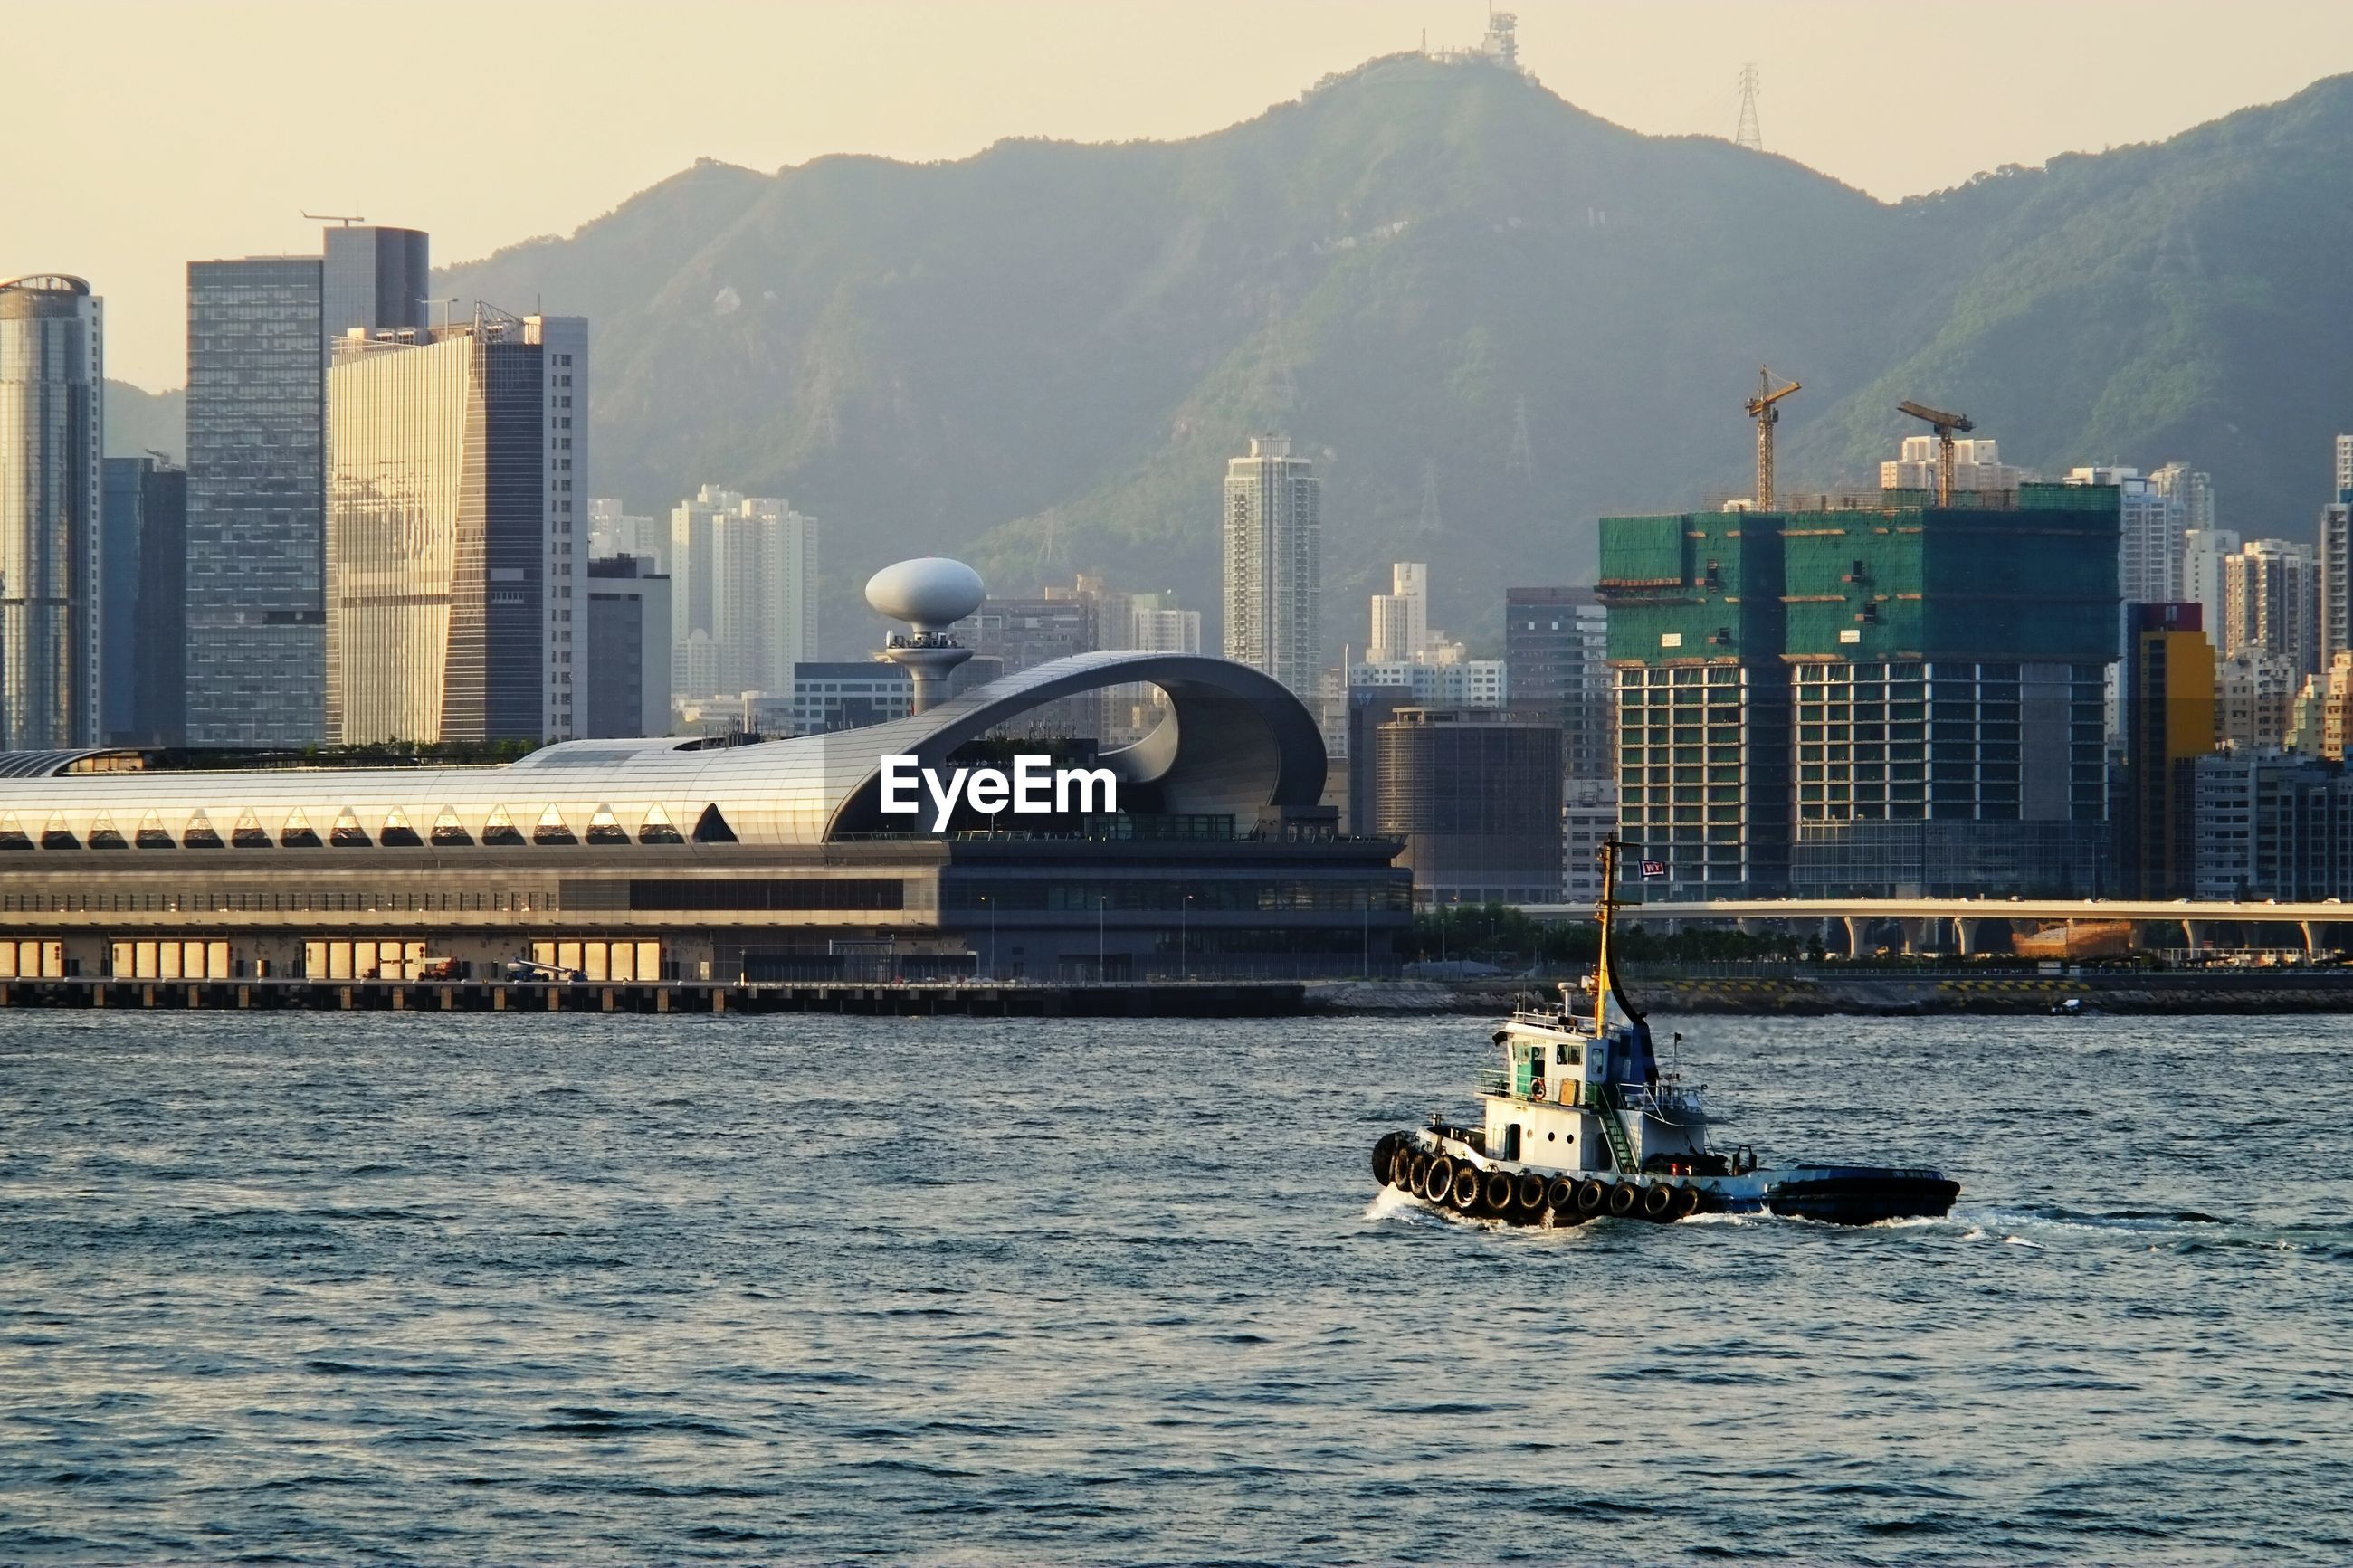 Nautical vessel sailing on river against city